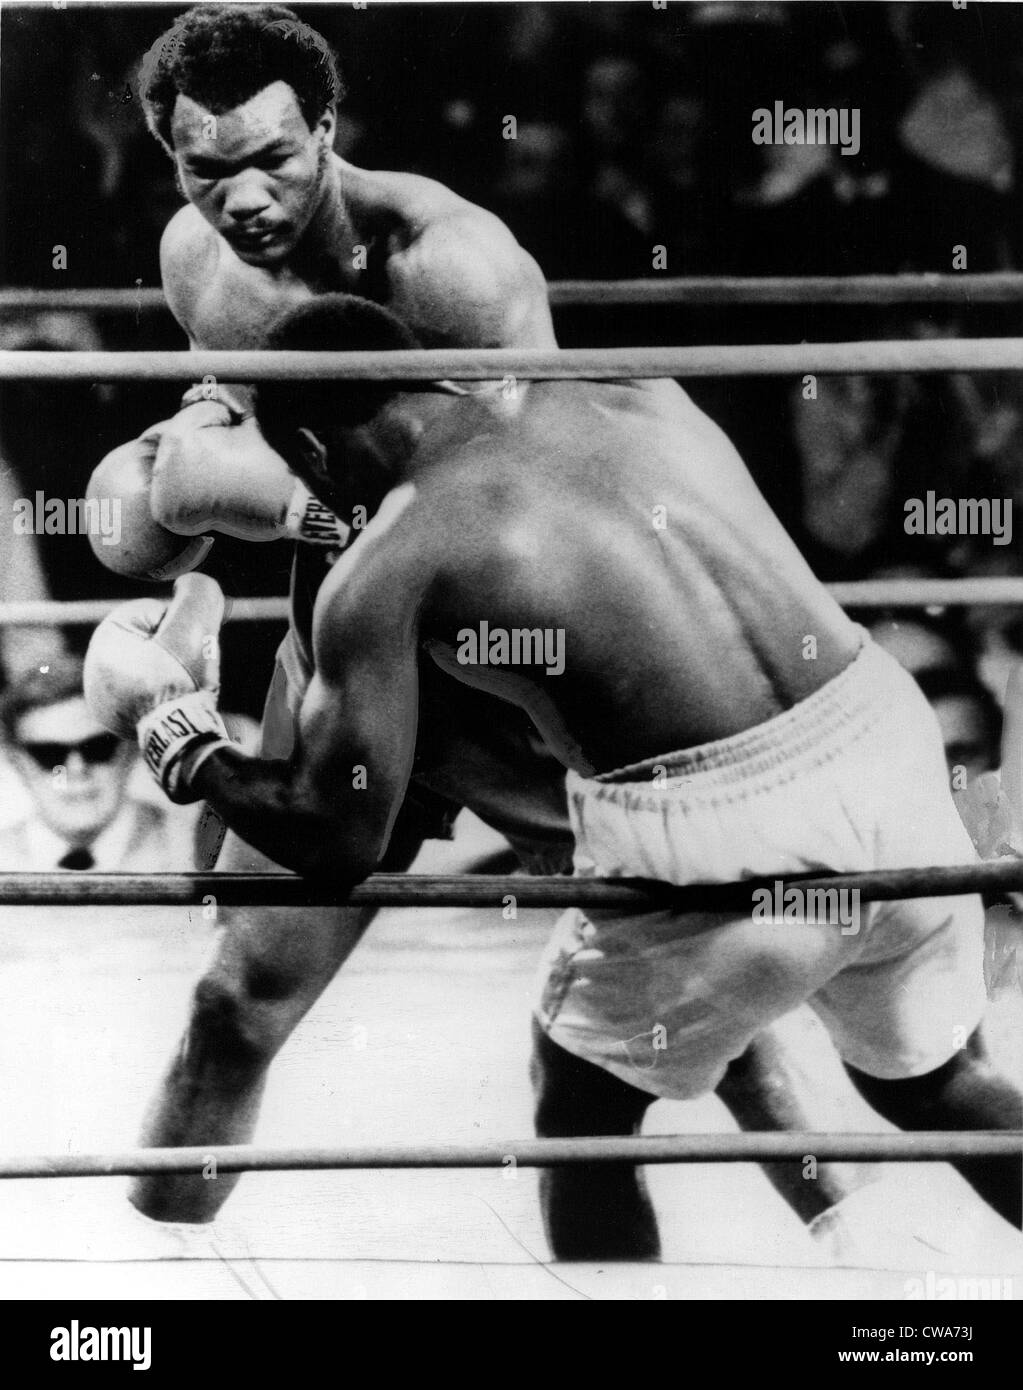 GEORGE FOREMAN- The boxer knocking Joe Frazier down in the second round. Kingston, Jamaica, 1/22/73. Courtesy: CSU - Stock Image